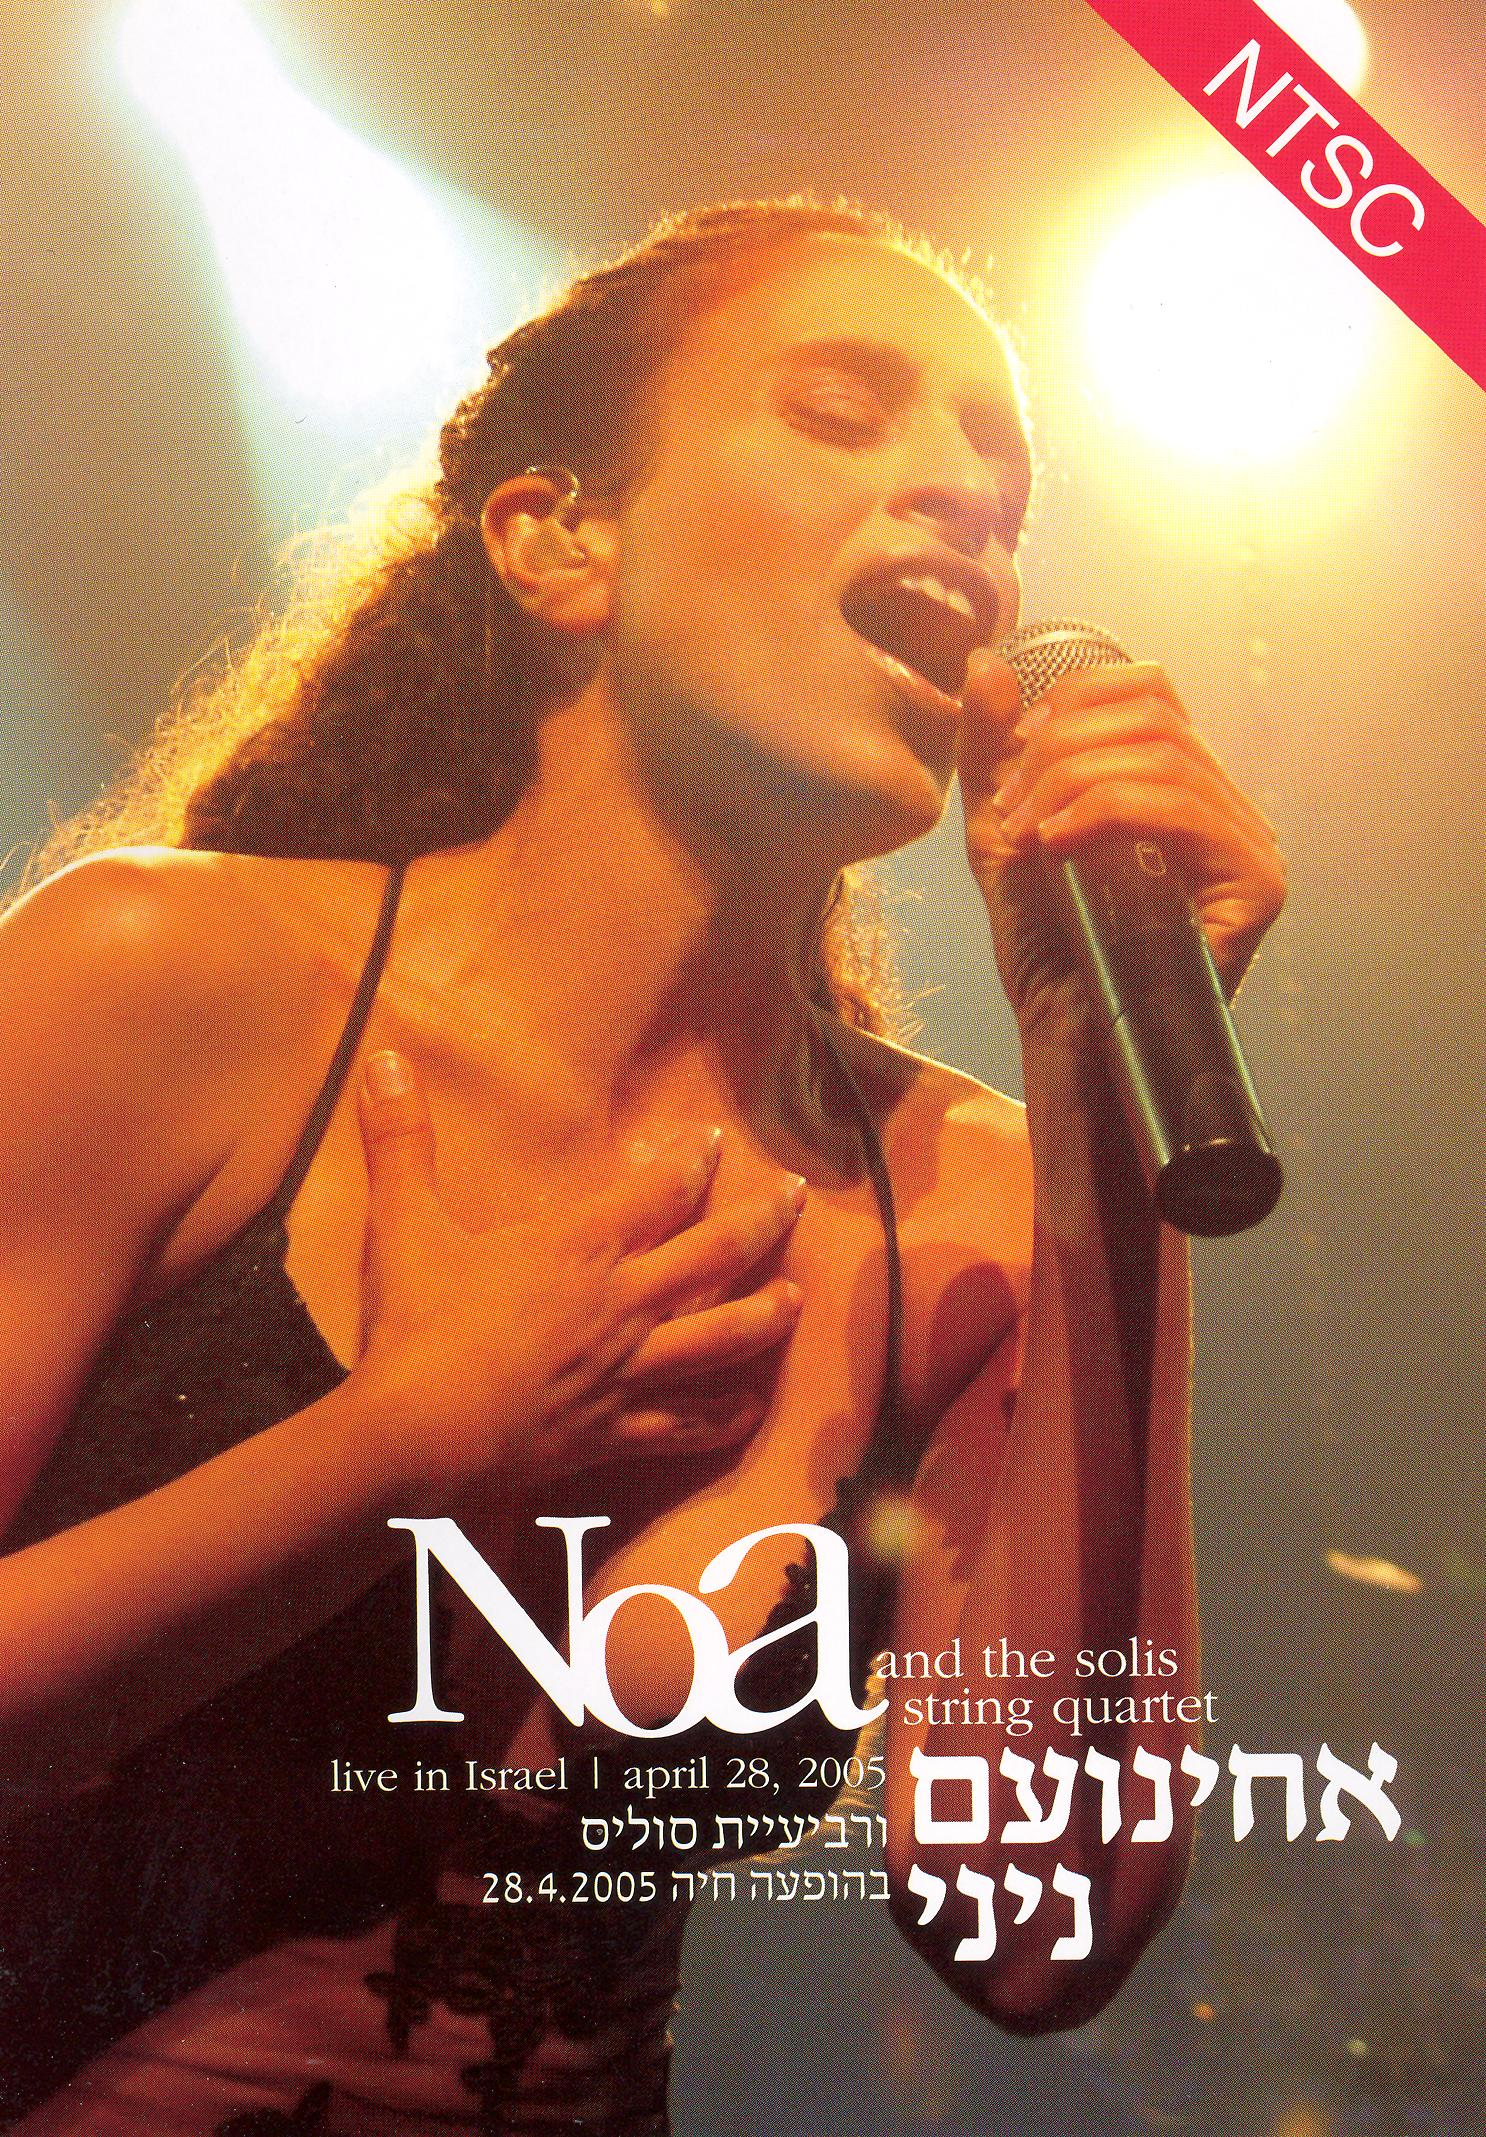 Noa and the Solis String Quartet: Live in Israel